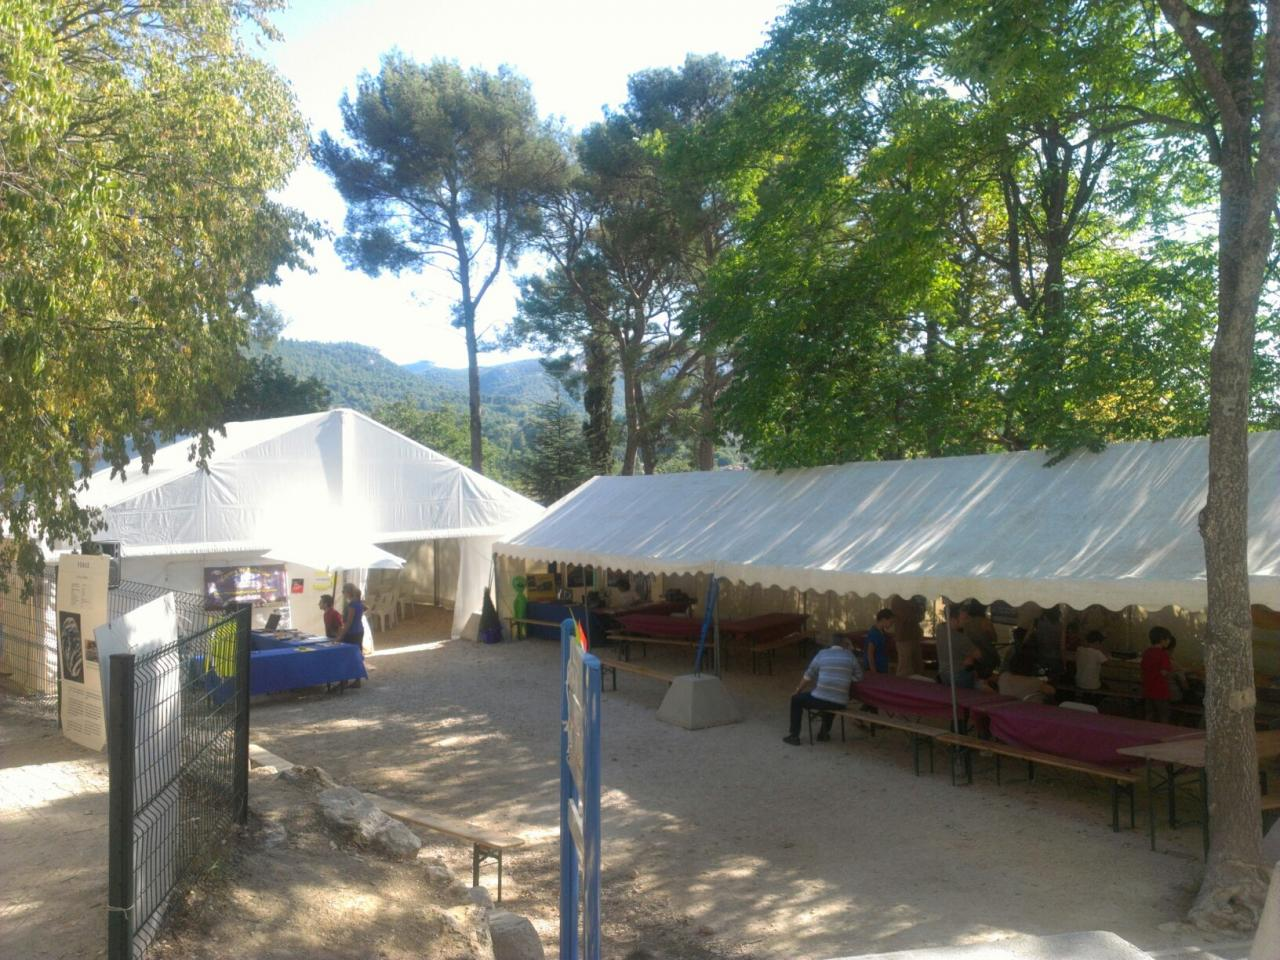 Vue d'ensemble des stands (photo ODH TV)